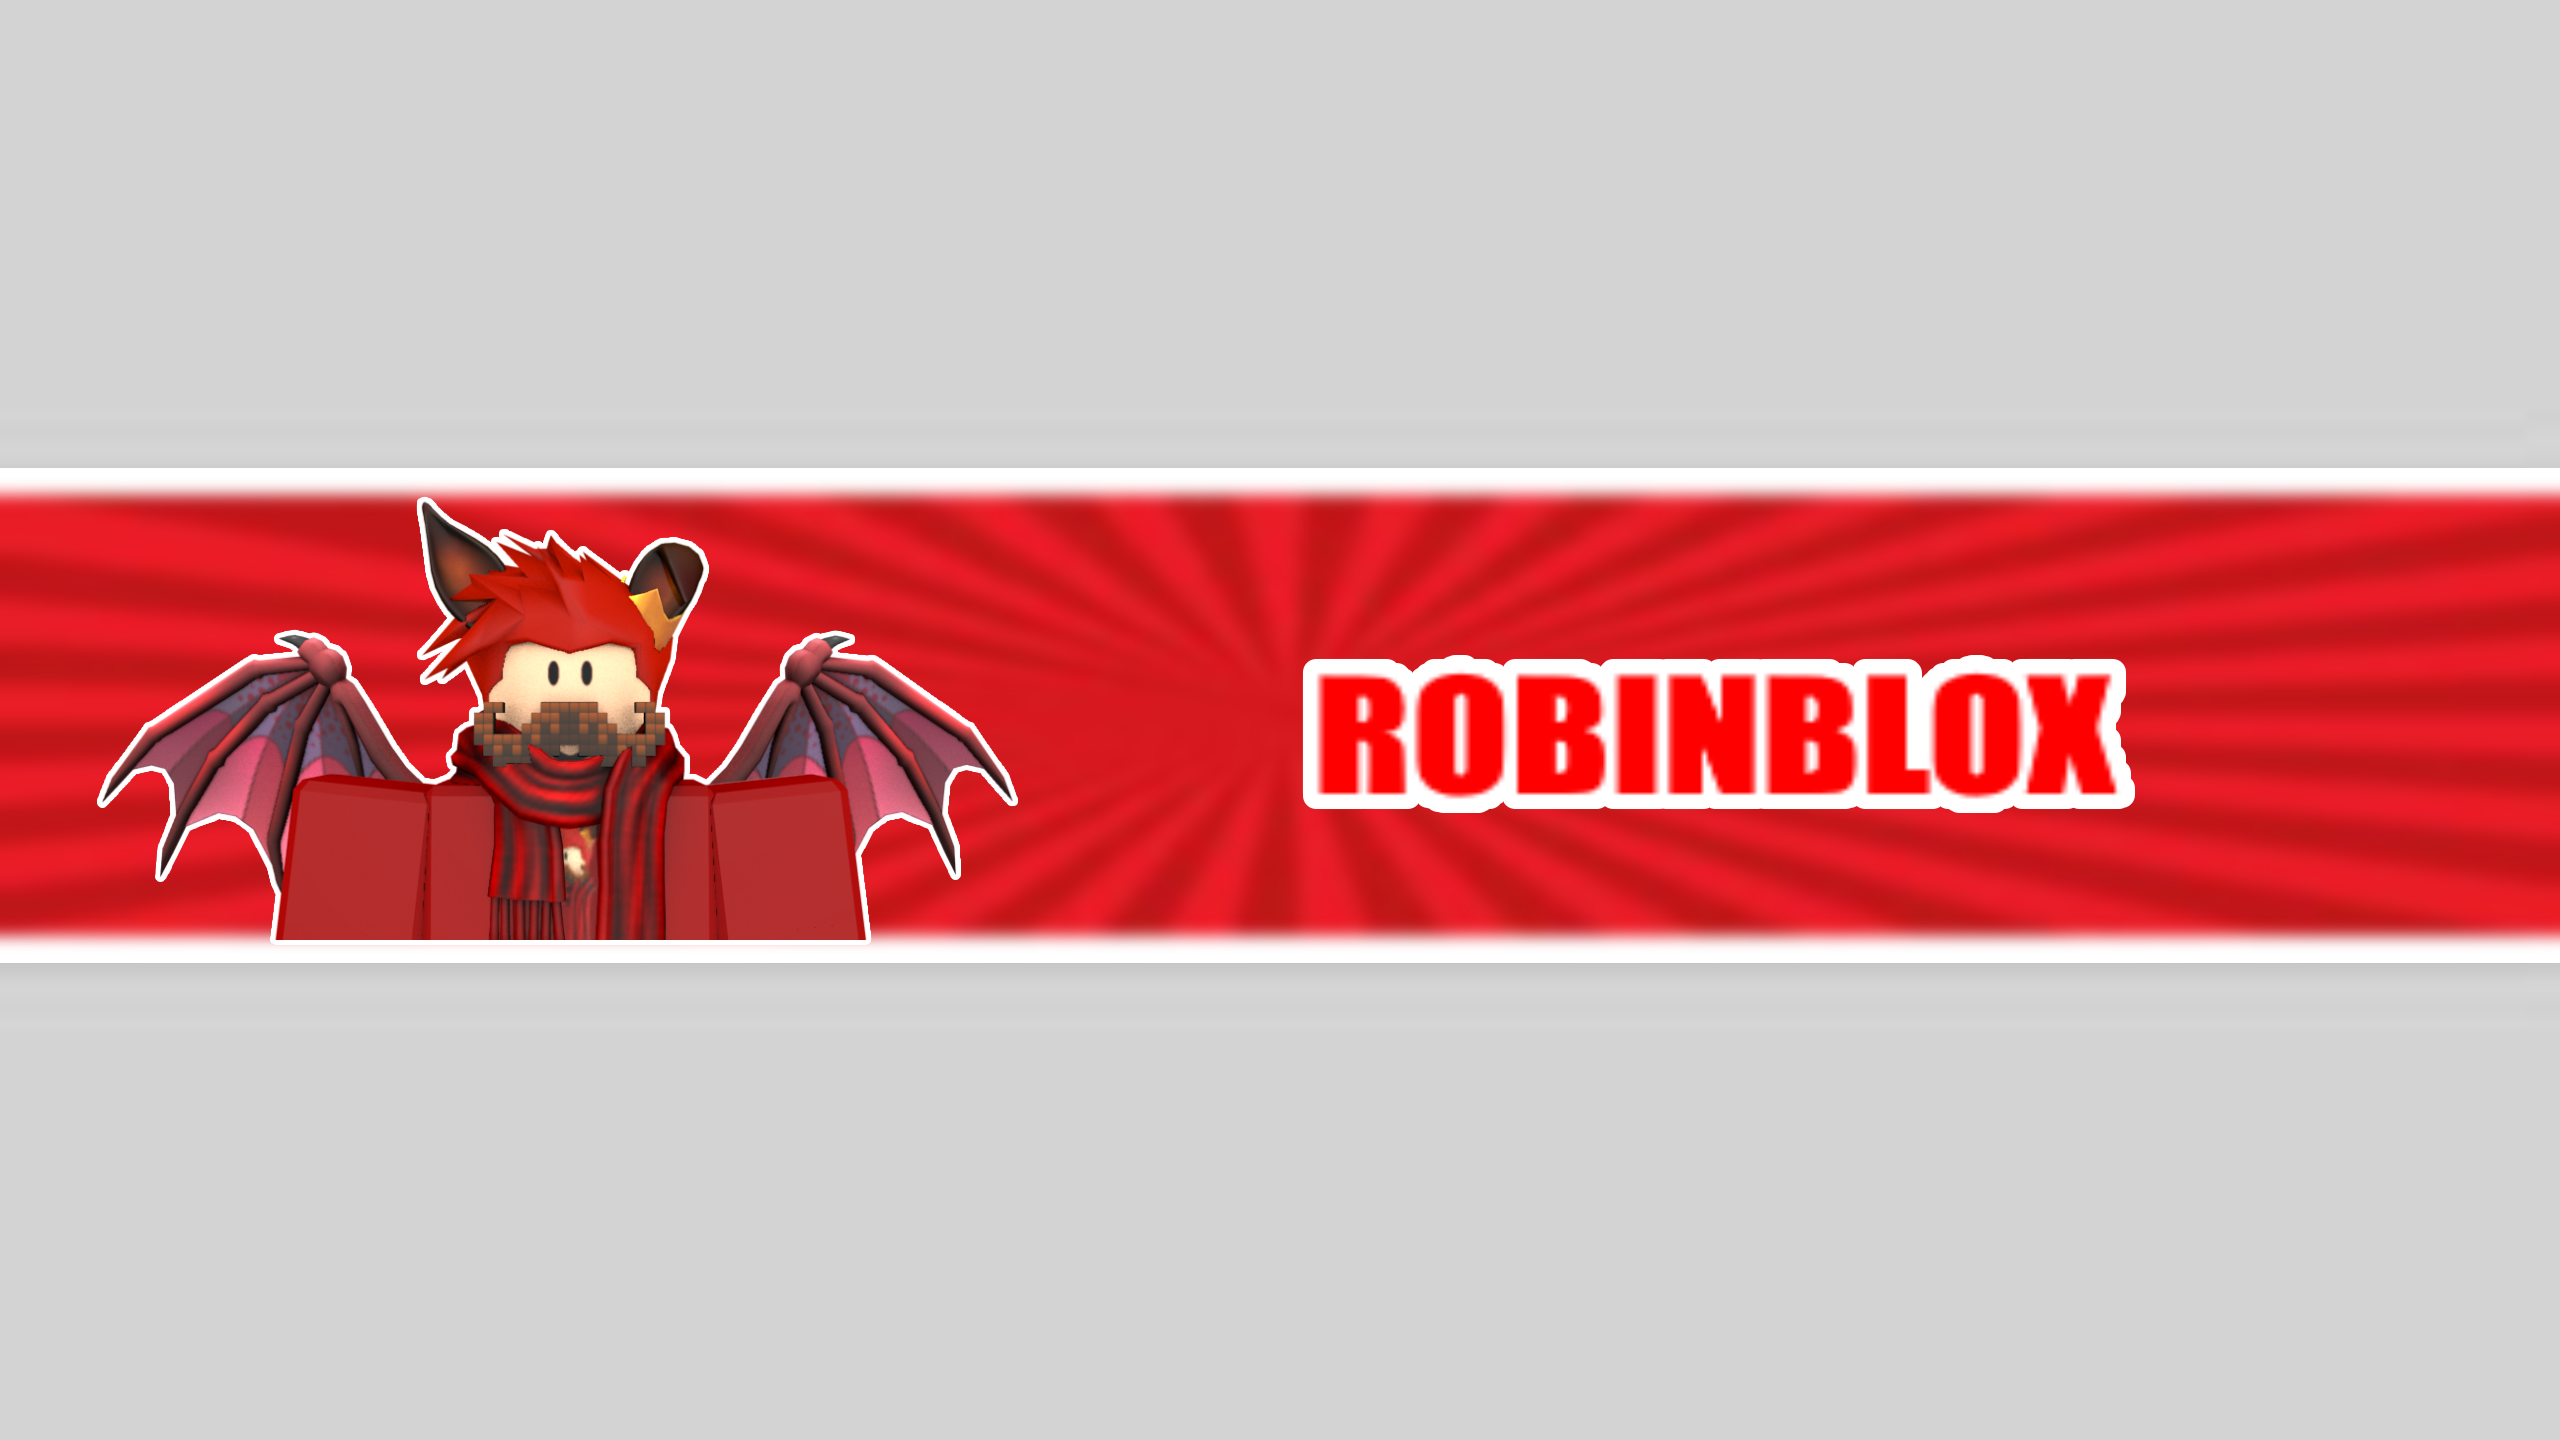 Make You Roblox Youtube Banner Or Logo Roblox Gfx Png Stunning Feedback On Gfx I Made Art Design Support Roblox Developer Forum